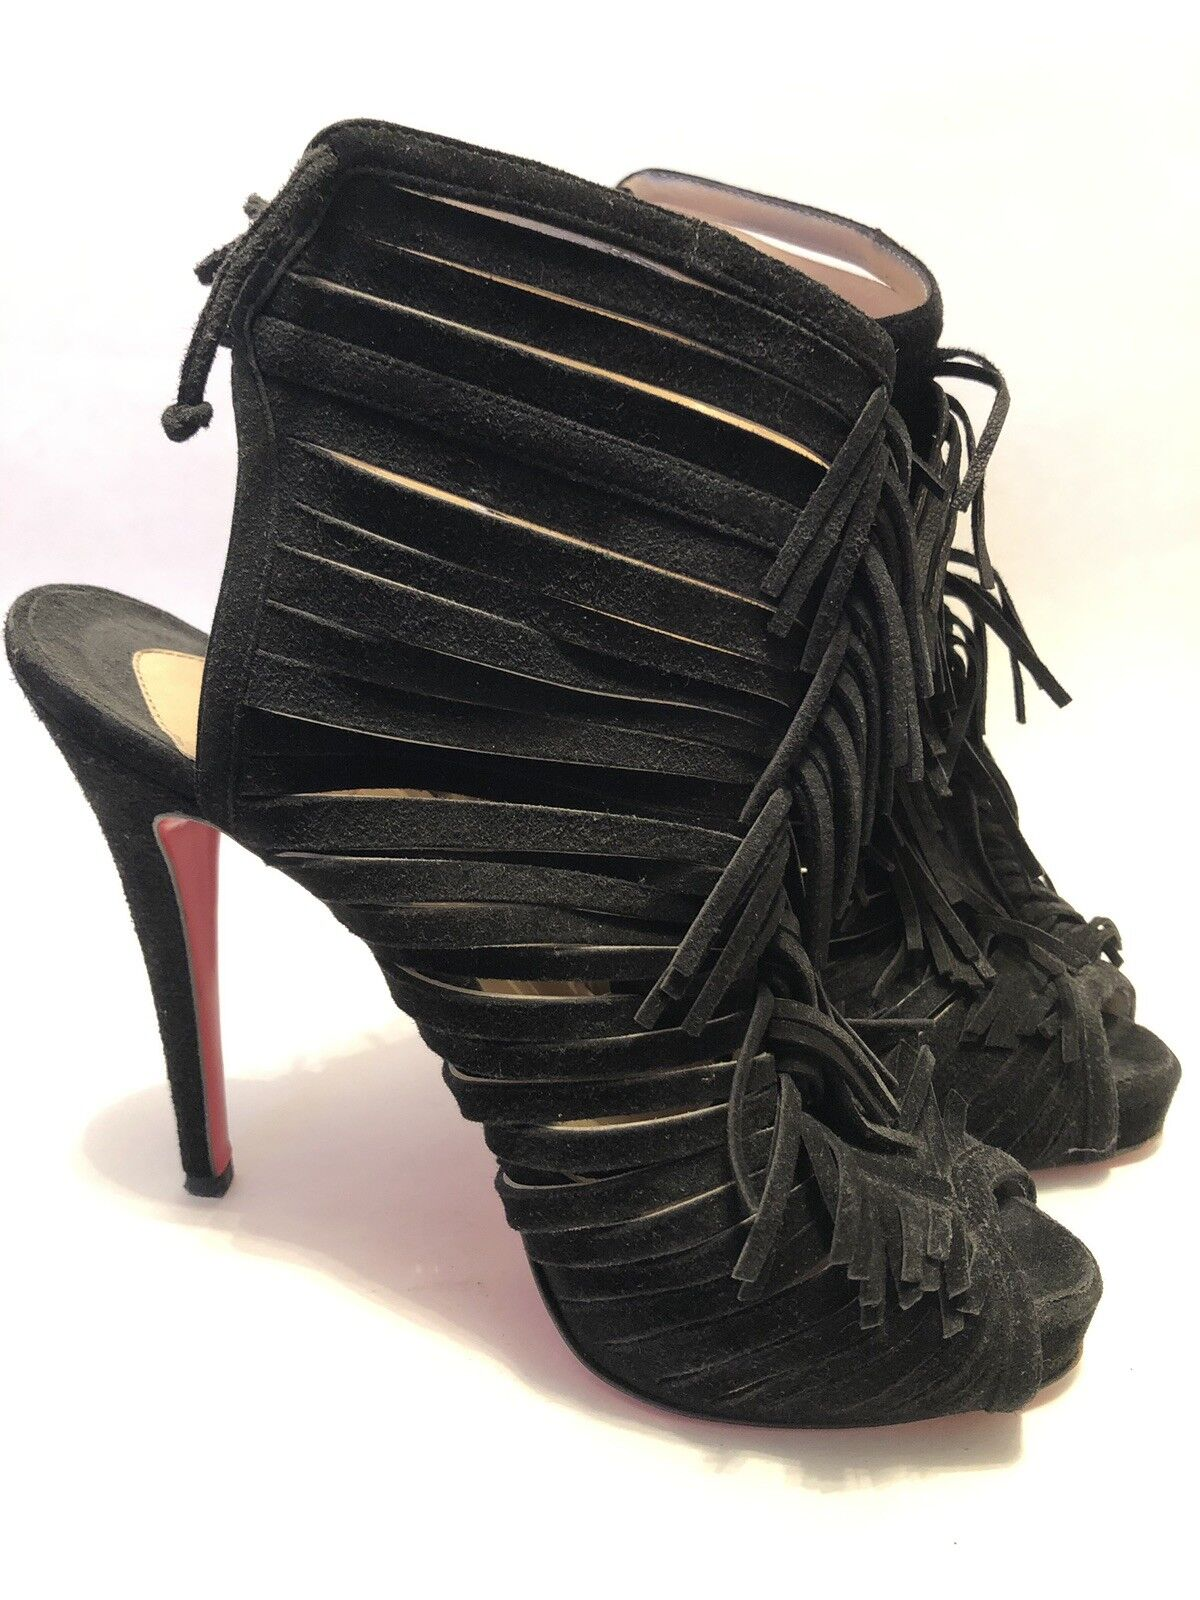 Christian Louboutin Booties 36.5 Black Suede Suede Suede 91c3c4